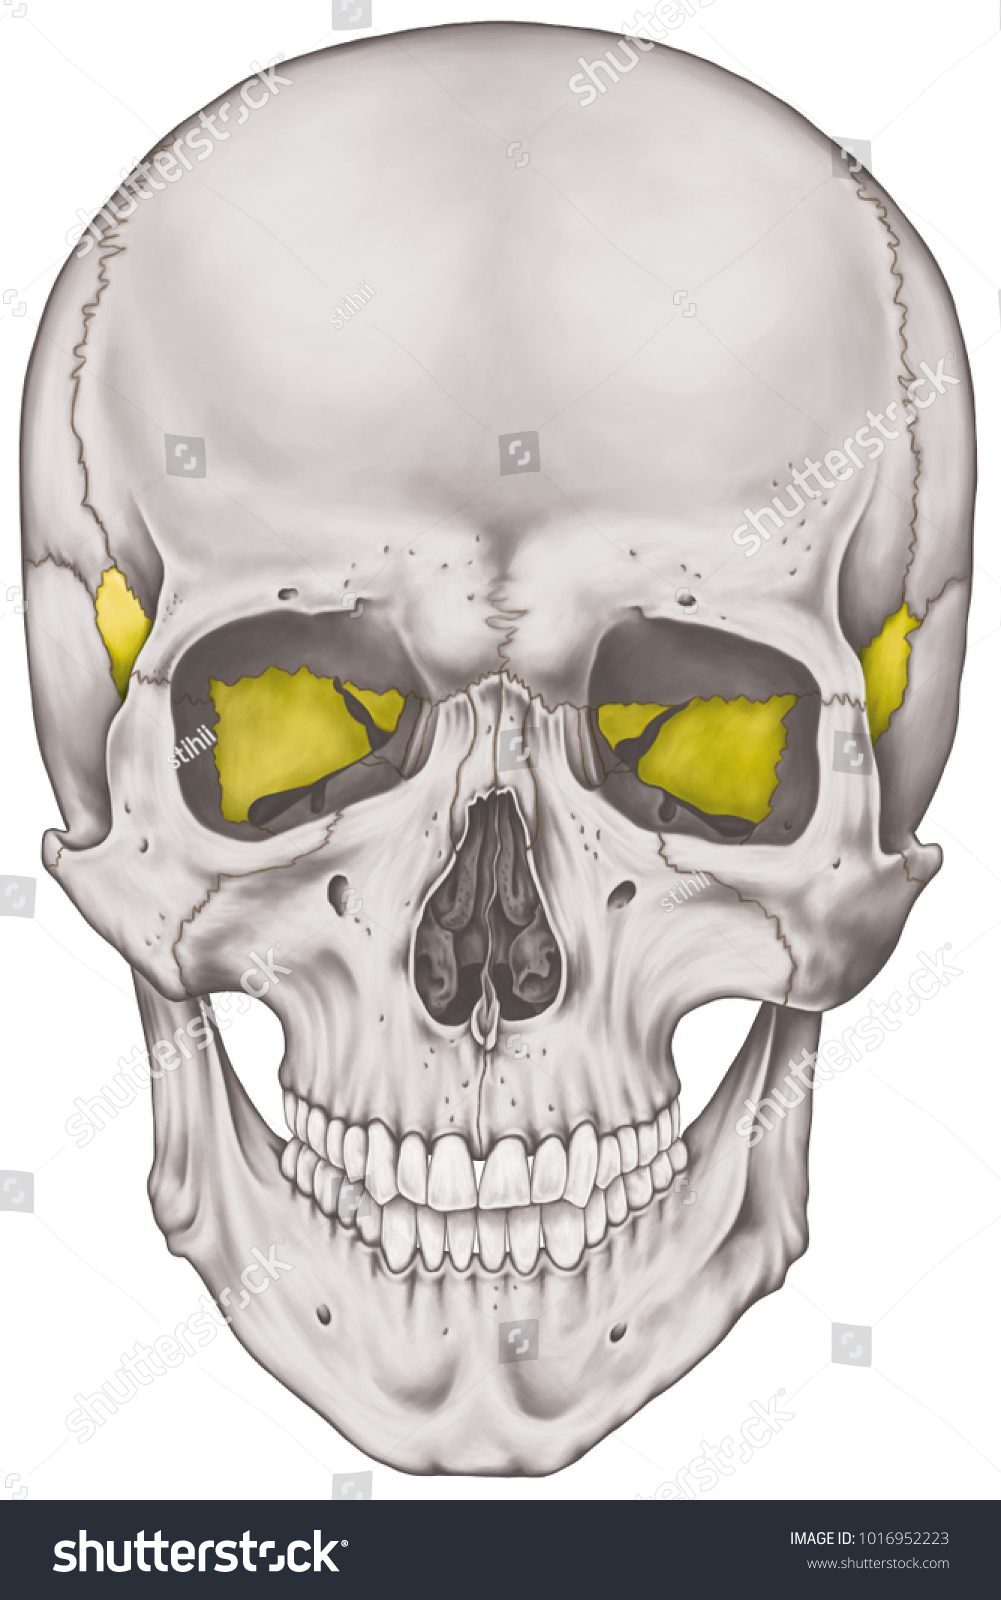 Sphenoid Bone Cranium Bones Head Skull Stock Illustration 1016952223 ...